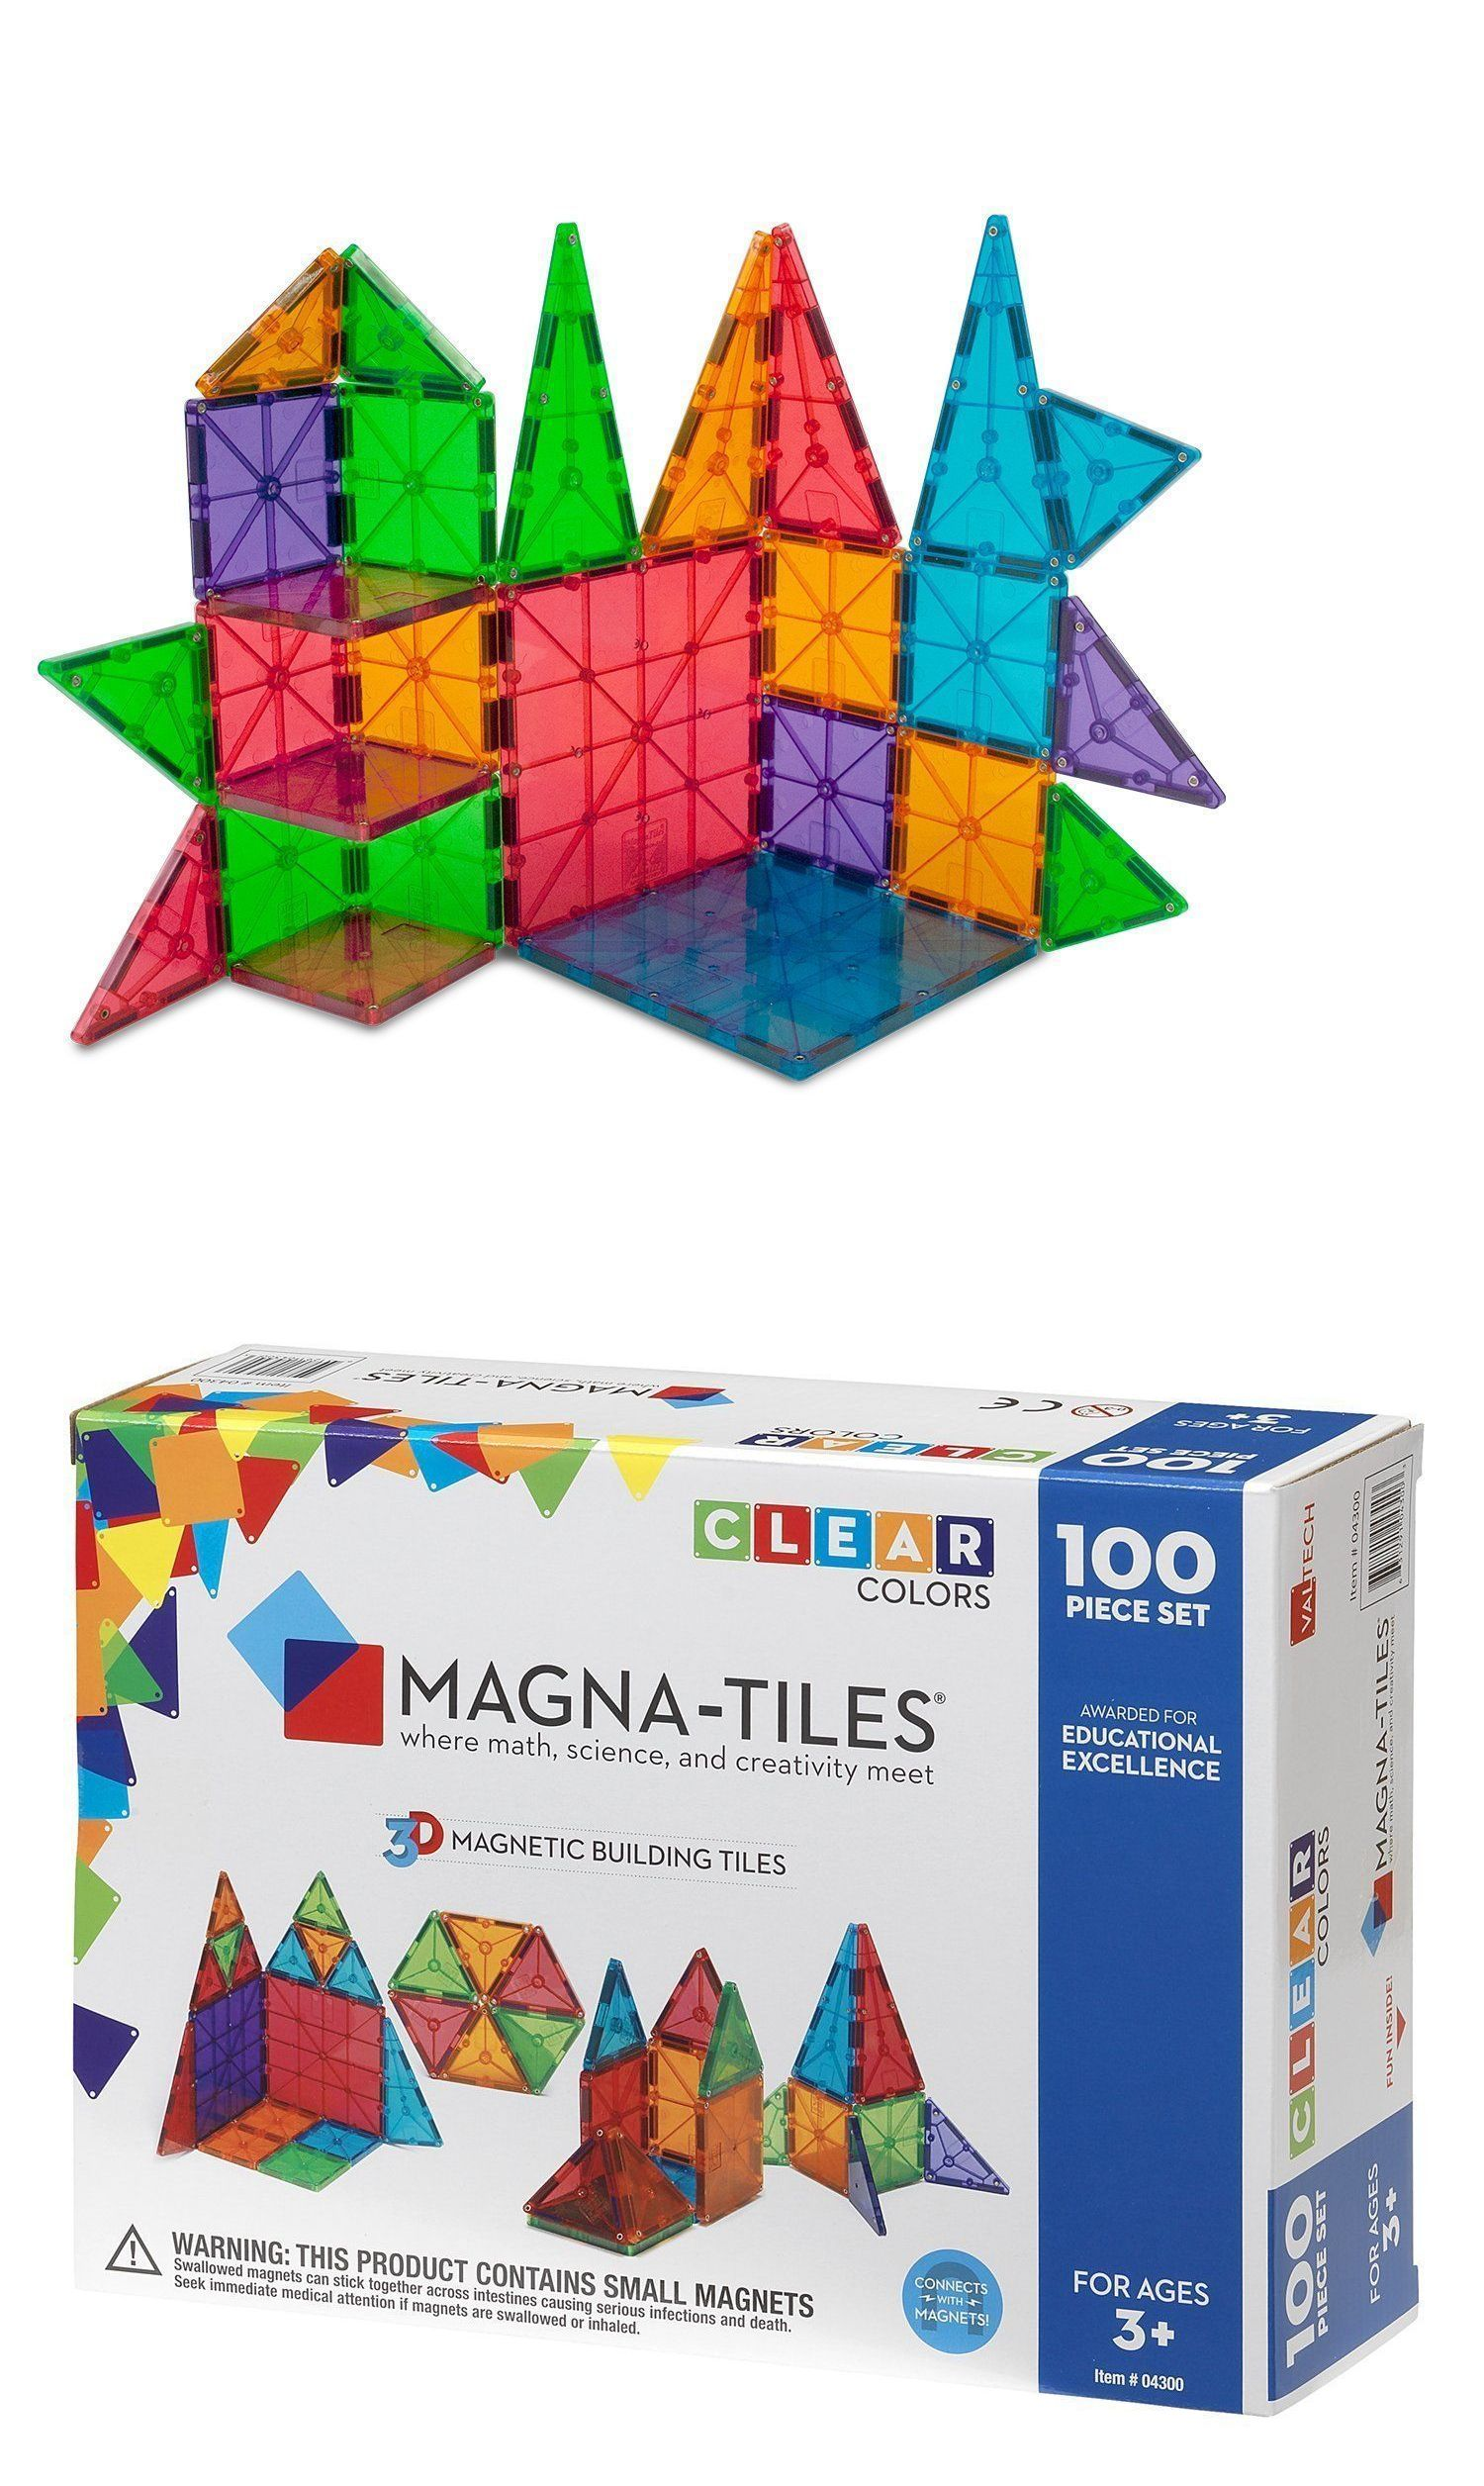 Building Toy Sets And Packs 258040 Magna Tiles 100pc Clear Color 3d Magnetic Building Tiles Valtech New In Box Magna Tiles Magnetic Building Tiles Tiles